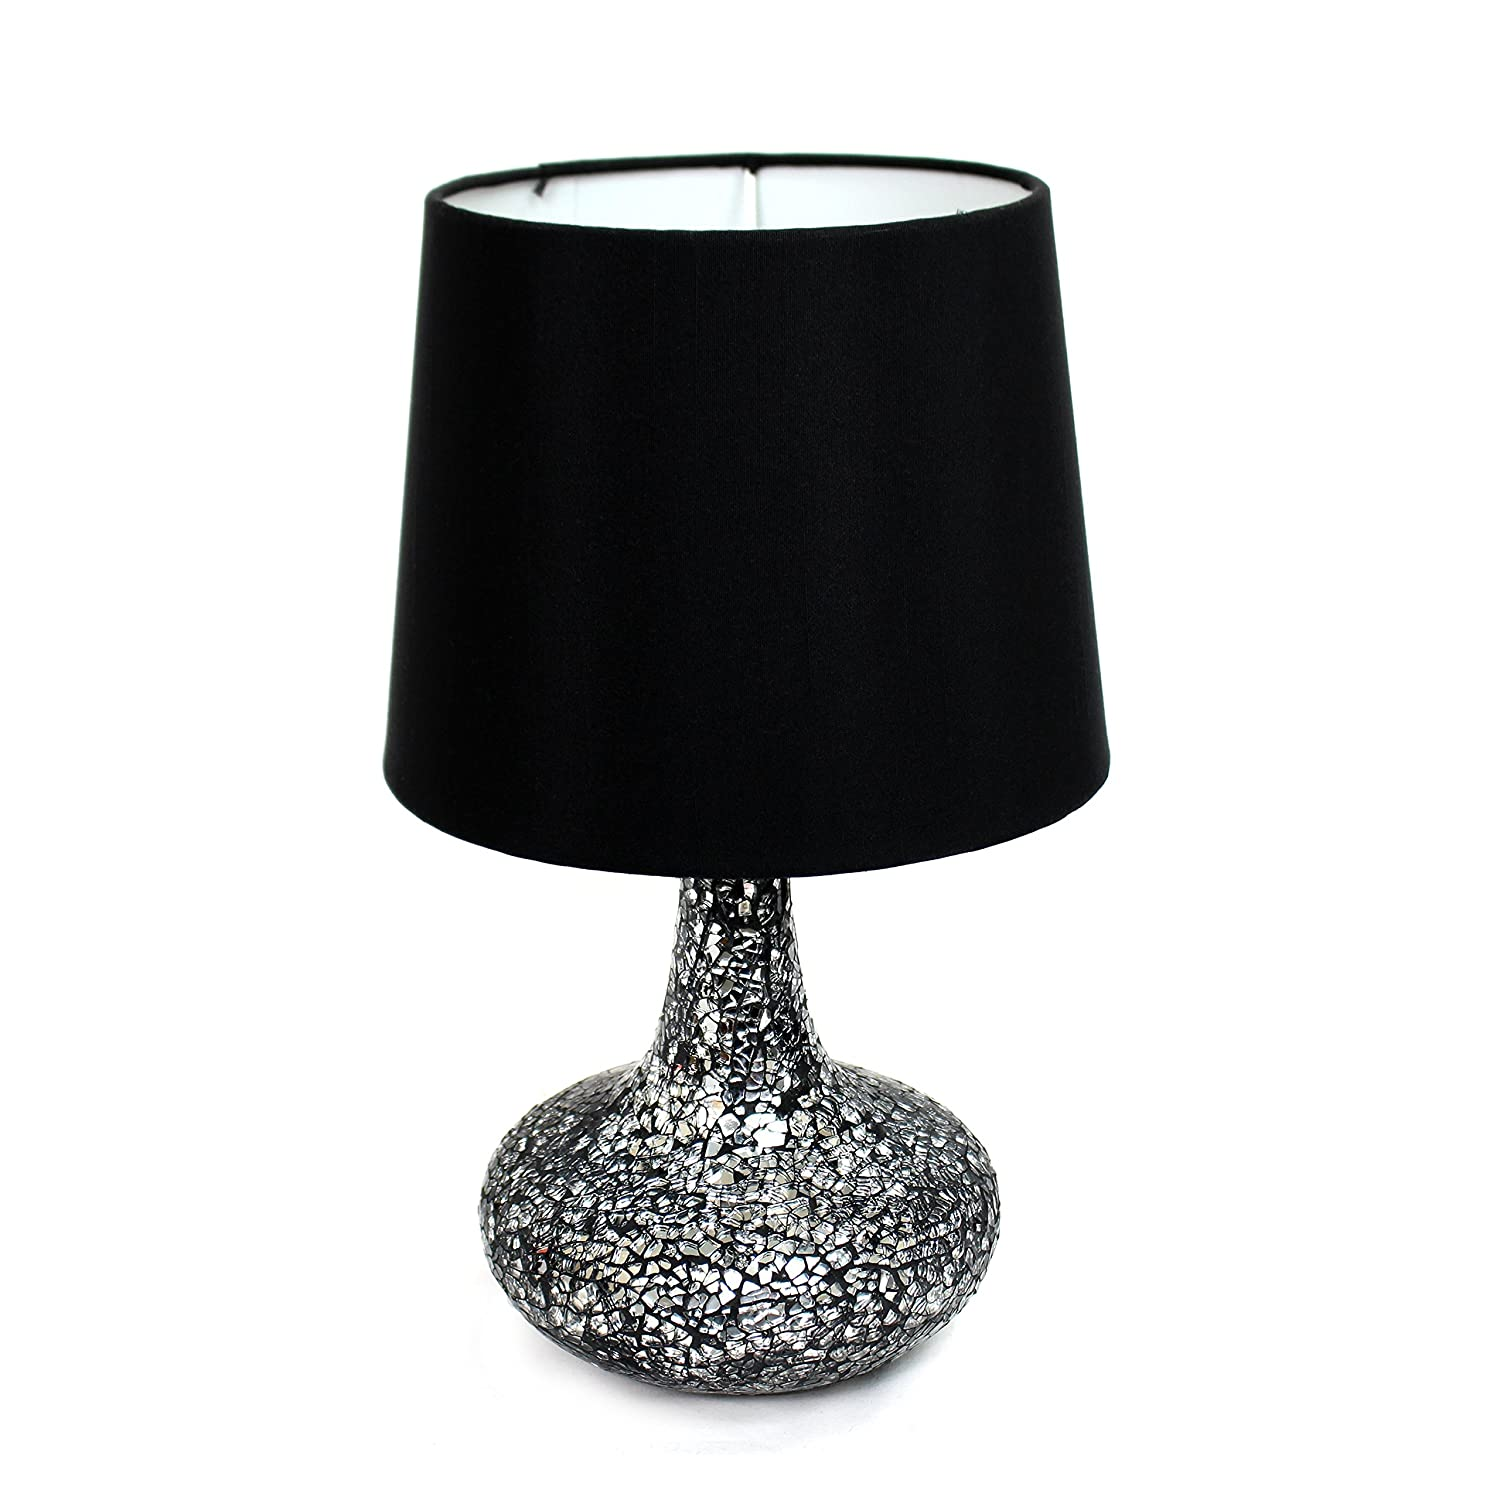 simple designs lt3039blk mosaic tiled glass genie table lamp with satin look fabric shade black crystal lamp amazoncom - Table Lamps Target